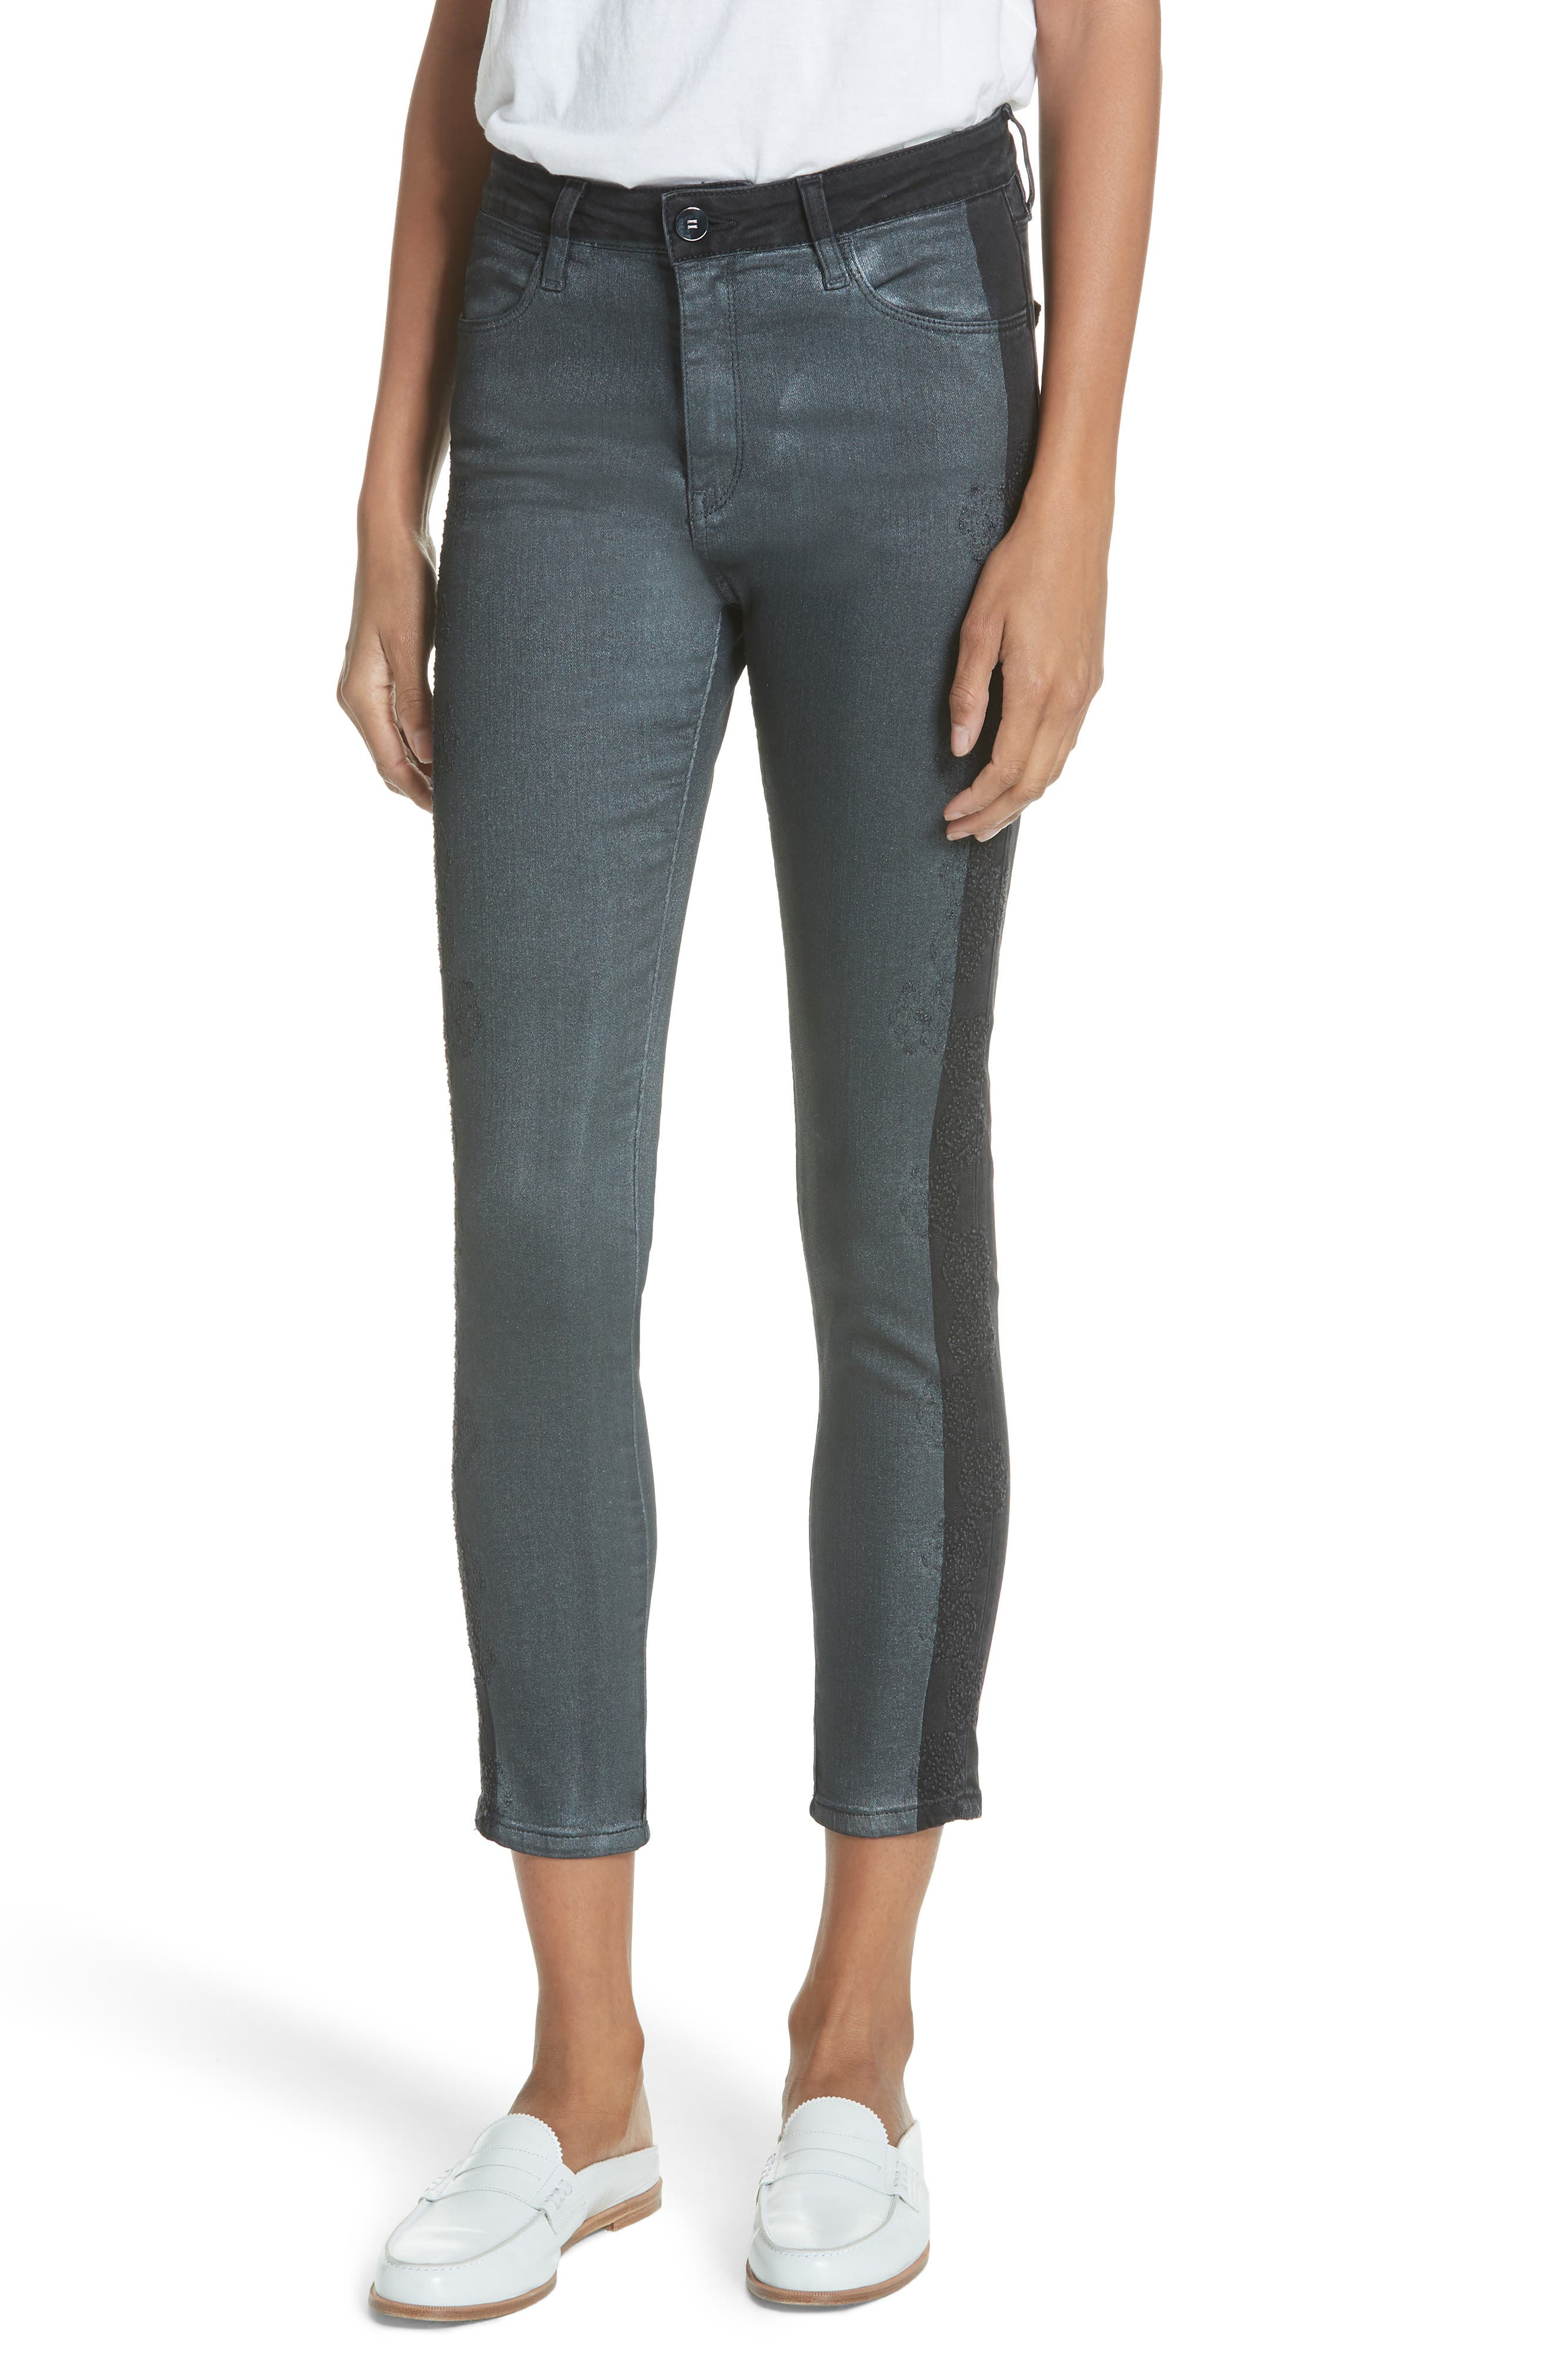 SAVANA SIDE STRIPE COATED SKINNY JEANS